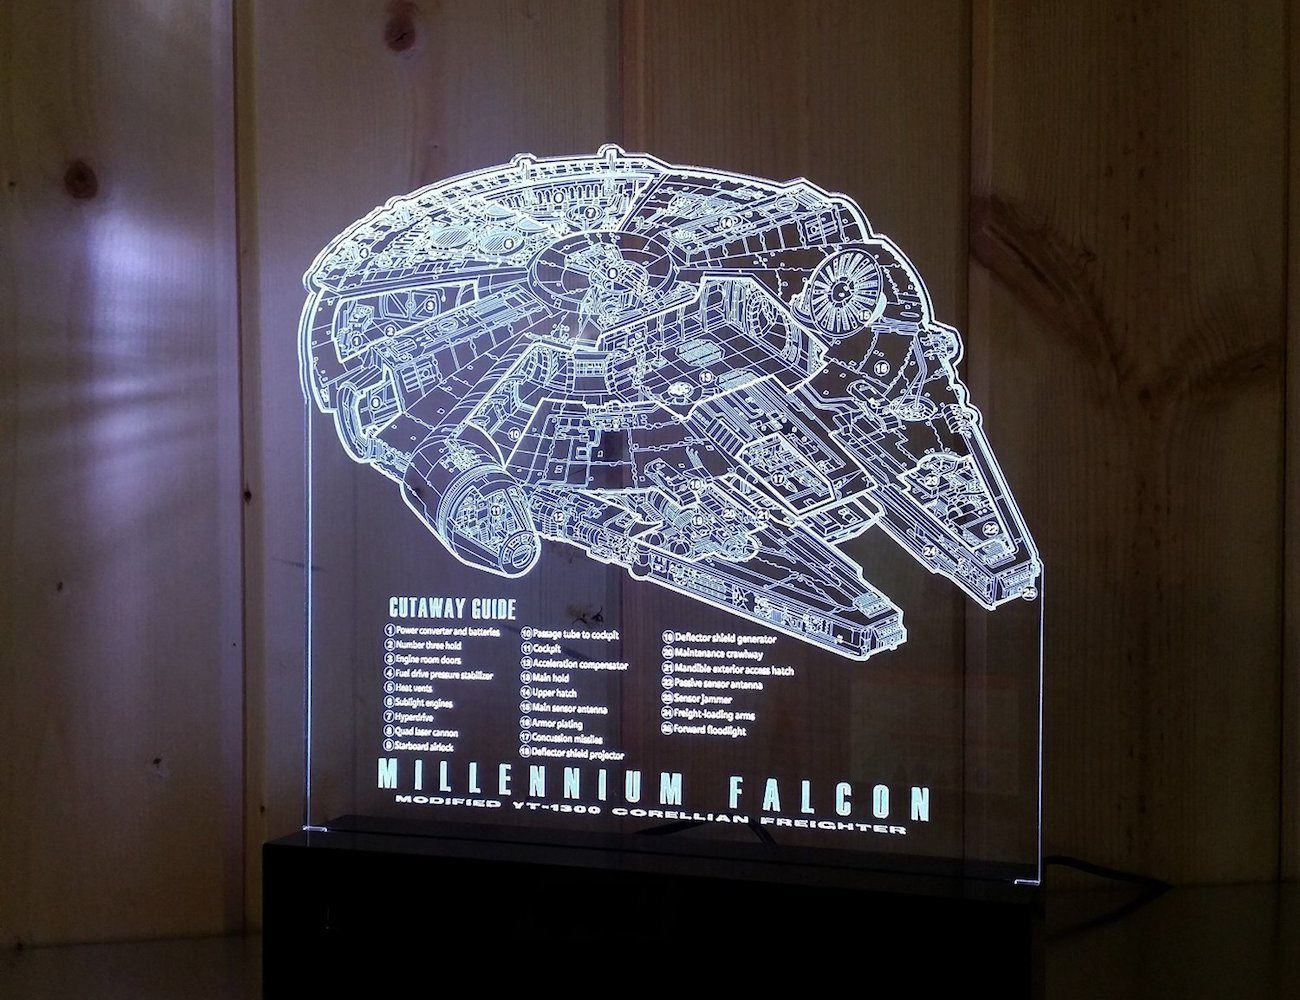 Star Wars Millennium Falcon Guide Lamp